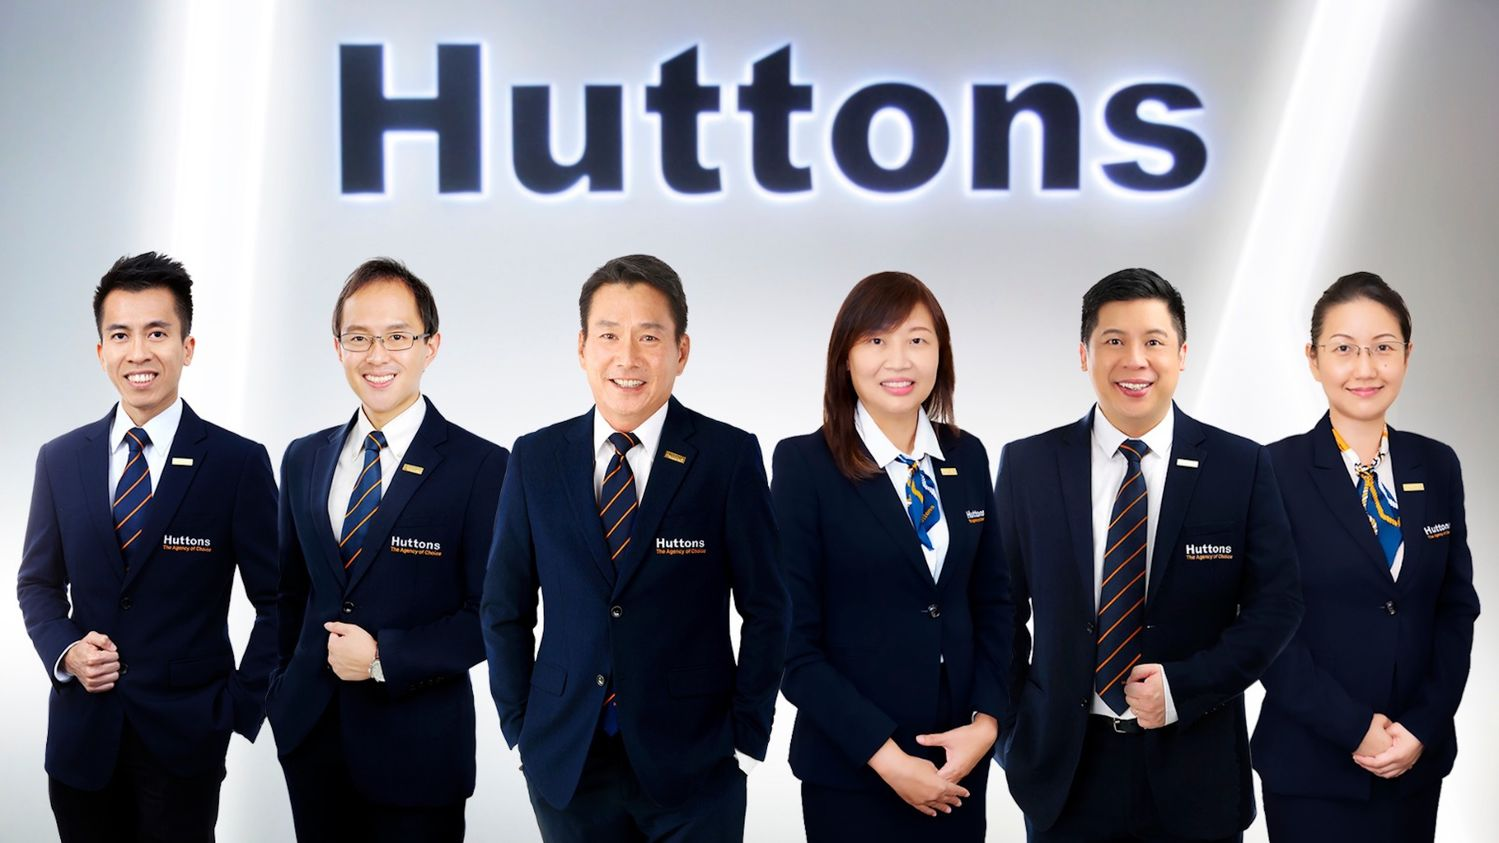 Huttons Asia's management team - EDGEPROP SINGAPORE